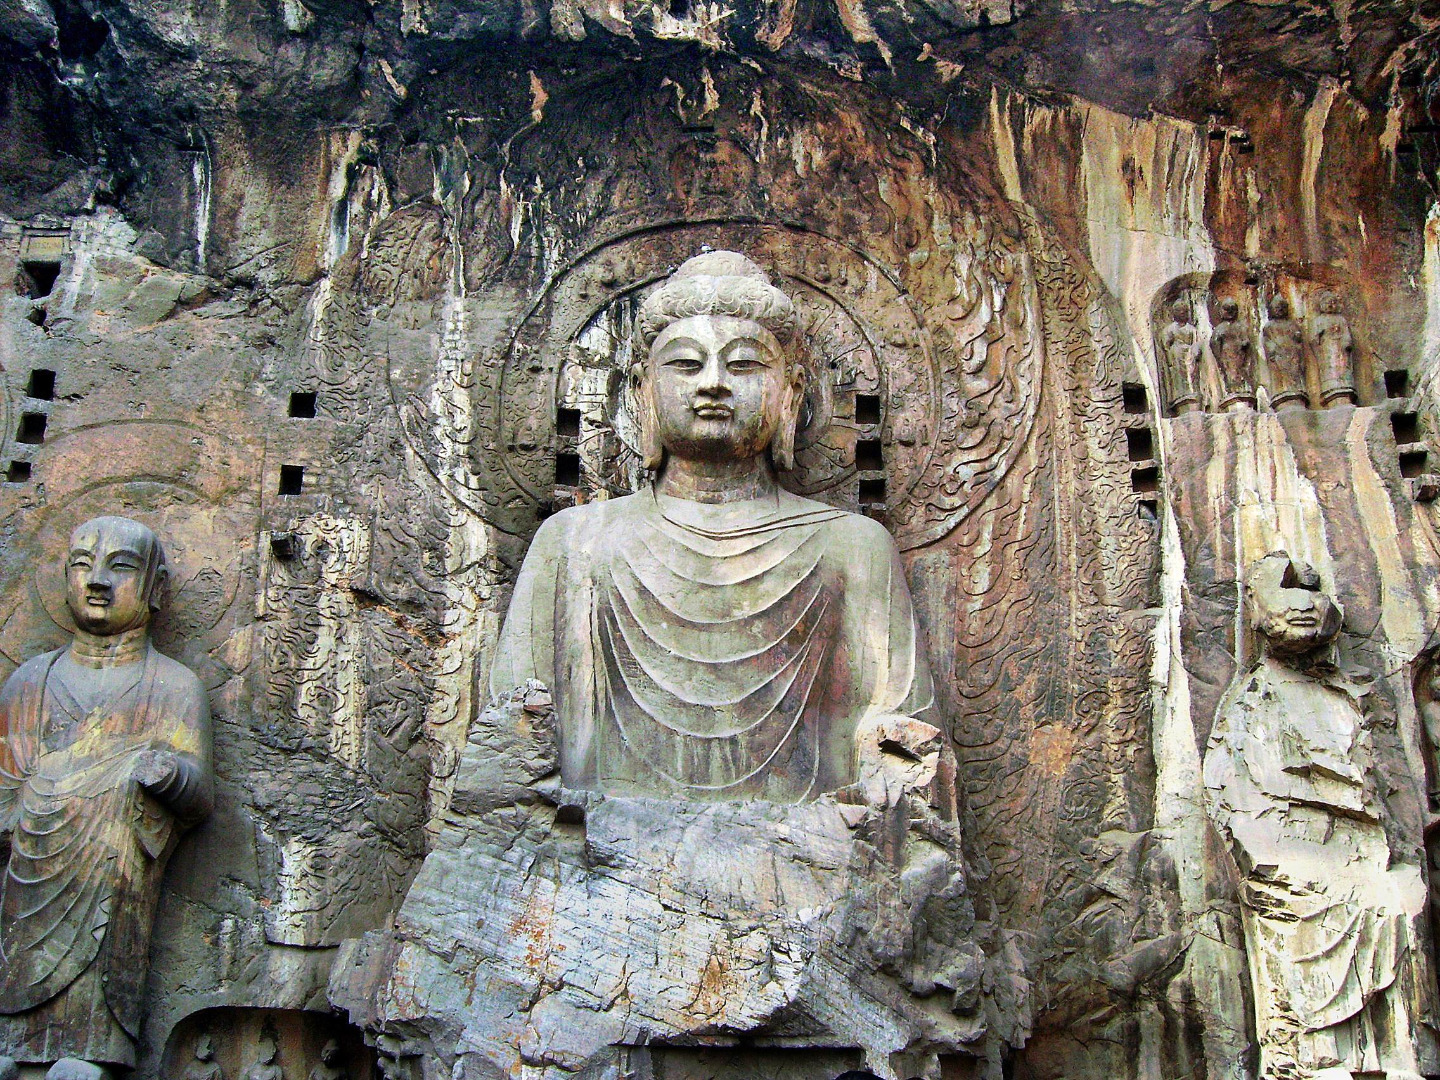 "Picture from globeimages. The Longmen Grottoes (simplified Chinese: 龙门石窟; traditional Chinese: 龍門石窟; pinyin: lóngmén shíkū; lit. Dragon's Gate Grottoes) or Longmen Caves are one of the finest examples of Chinese Buddhist art. Housing tens of thousands of statues of Buddha and his disciples, they are located 12 kilometres (7.5 mi) south of present day Luòyáng in Hénán province, China. The images, many once painted, were carved into caves excavated from the limestone cliffs of the Xiangshan and Longmenshan mountains, running east and west.  There are as many as 100,000 statues within the 1,400 caves, ranging from an 1 inch (25 mm) to 57 feet (17 m) in height. The area also contains nearly 2,500 stelae and inscriptions, whence the name ""Forest of Ancient Stelae"", as well as over sixty Buddhist pagodas. Situated in a scenic natural environment, the caves were dug from a 1 kilometre (0.62 mi) stretch of cliff running along both banks of the river. 30% date from the Northern Wei Dynasty and 60% from the Tang, caves from other periods accounting for less than 10% of the total. Starting with the Northern Wei Dynasty in 493 AD, patrons and donors included emperors, Wu Zetian of the Second Zhou Dynasty, members of the royal family, other rich families, generals, and religious groups.  In 2000 the site was inscribed upon the UNESCO World Heritage List as ""an outstanding manifestation of human artistic creativity,"" for its perfection of an art form, and for its encapsulation of the cultural sophistication of Tang China."